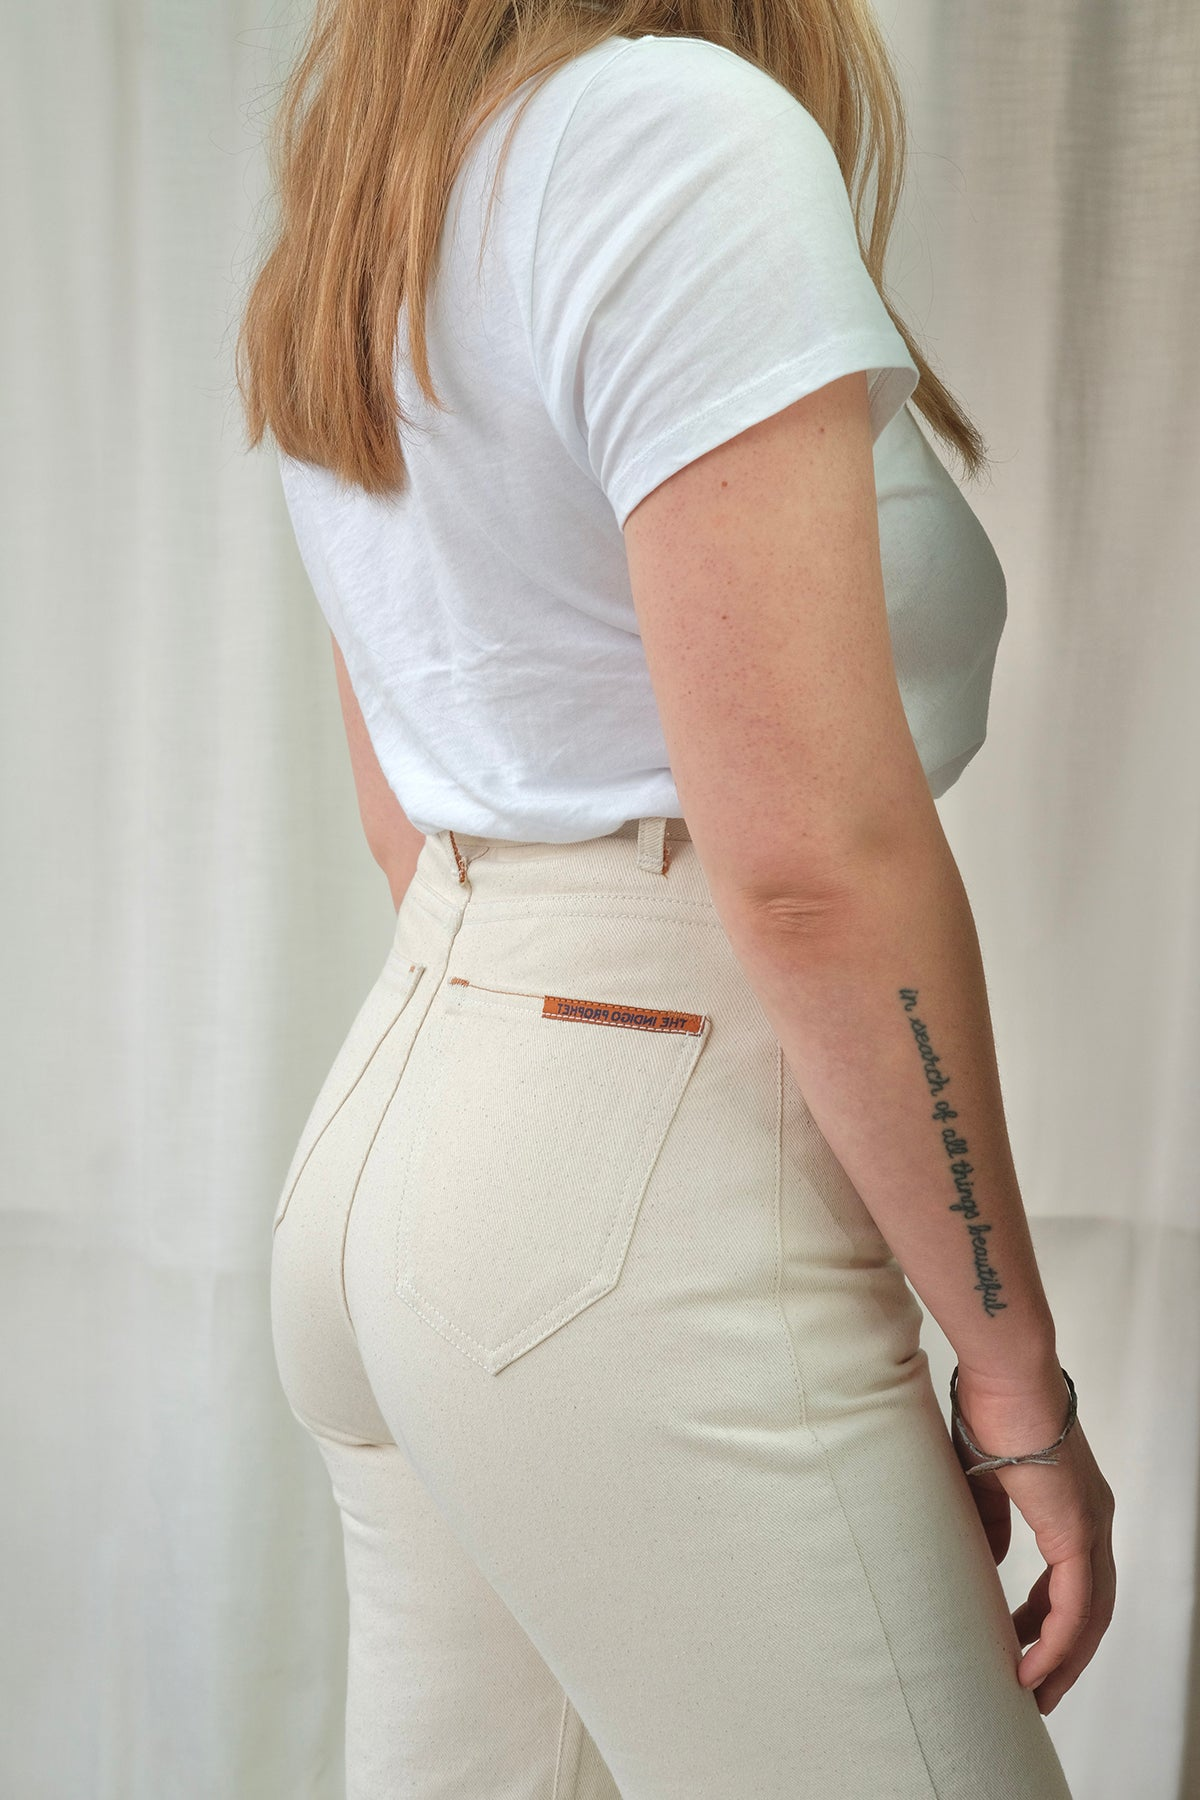 Close up image of model's side from shoulders to knees wearing HIGH POPE in cream with back pocket visable.